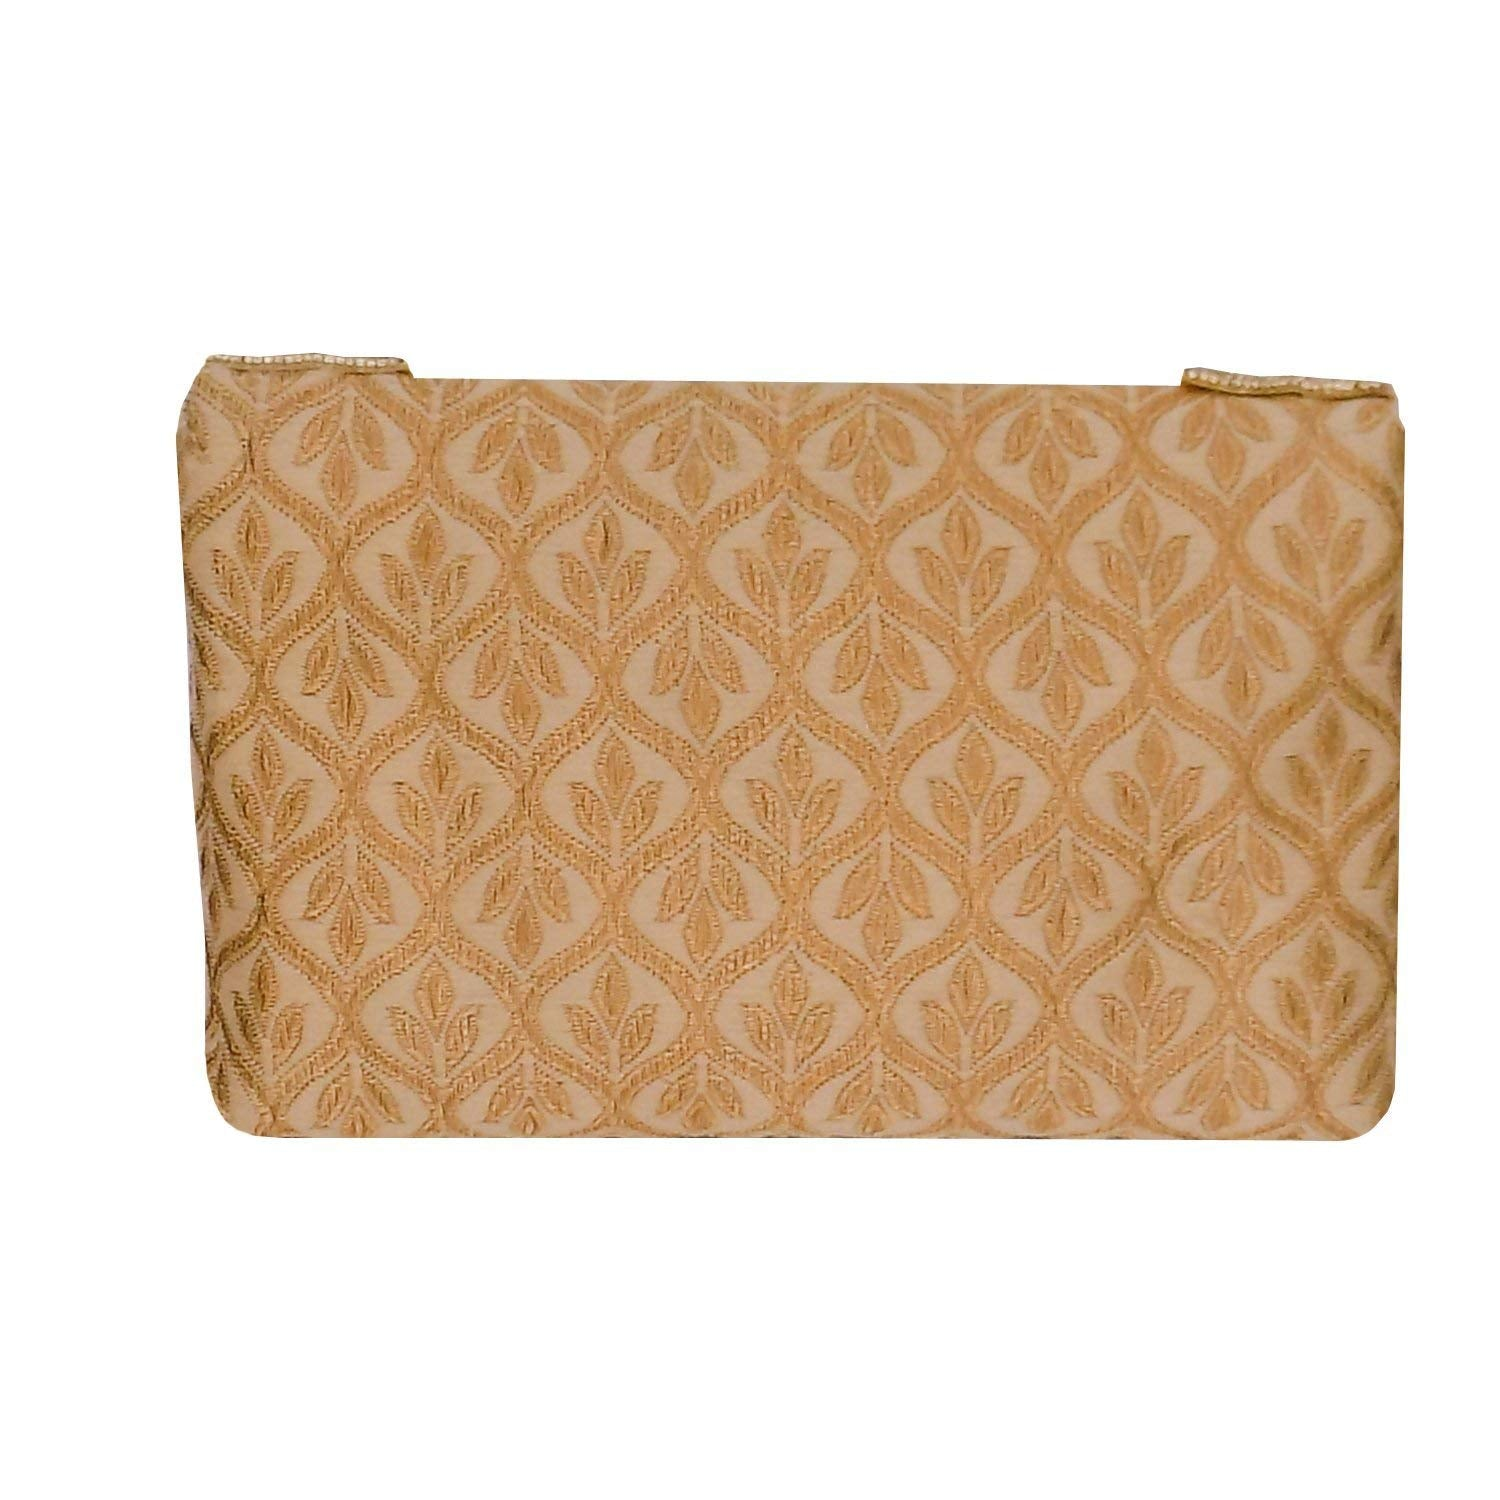 Ethnic Beads and Pearls Silk Clutch (Gold) - Bagaholics Gift